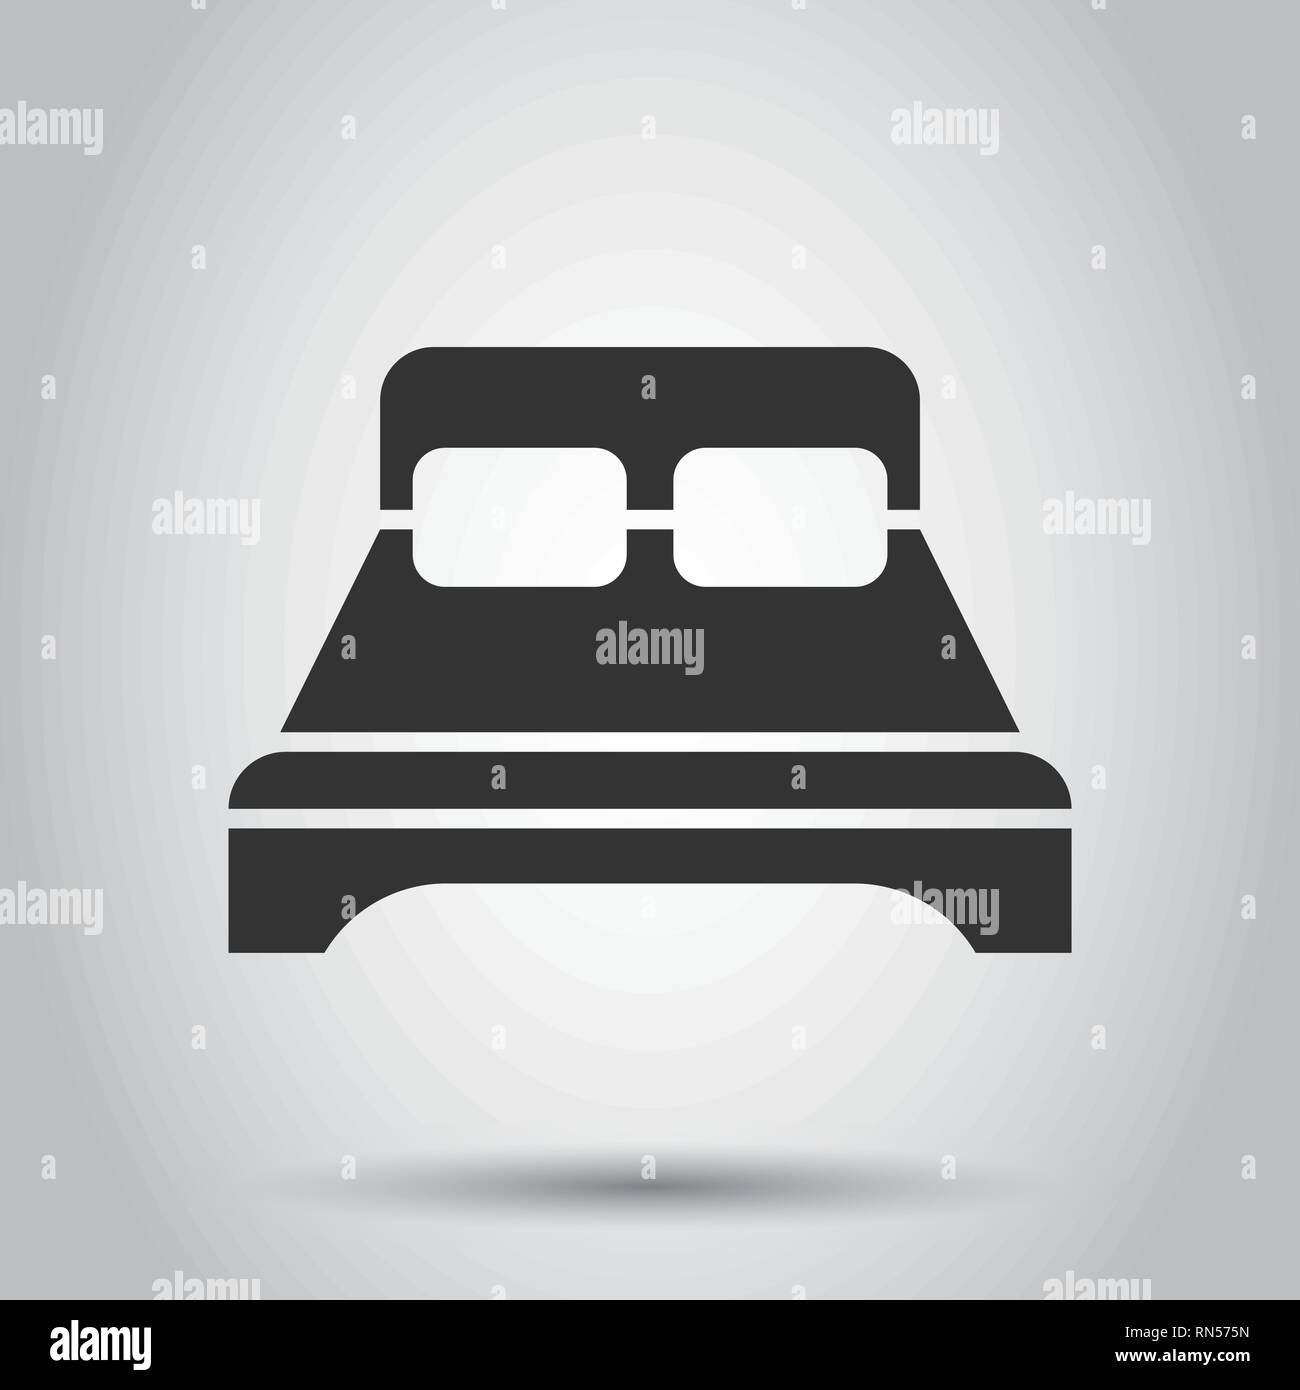 Relax Sofa Bed Icon In Flat Style Sleep Bedroom Vector Illustration On White